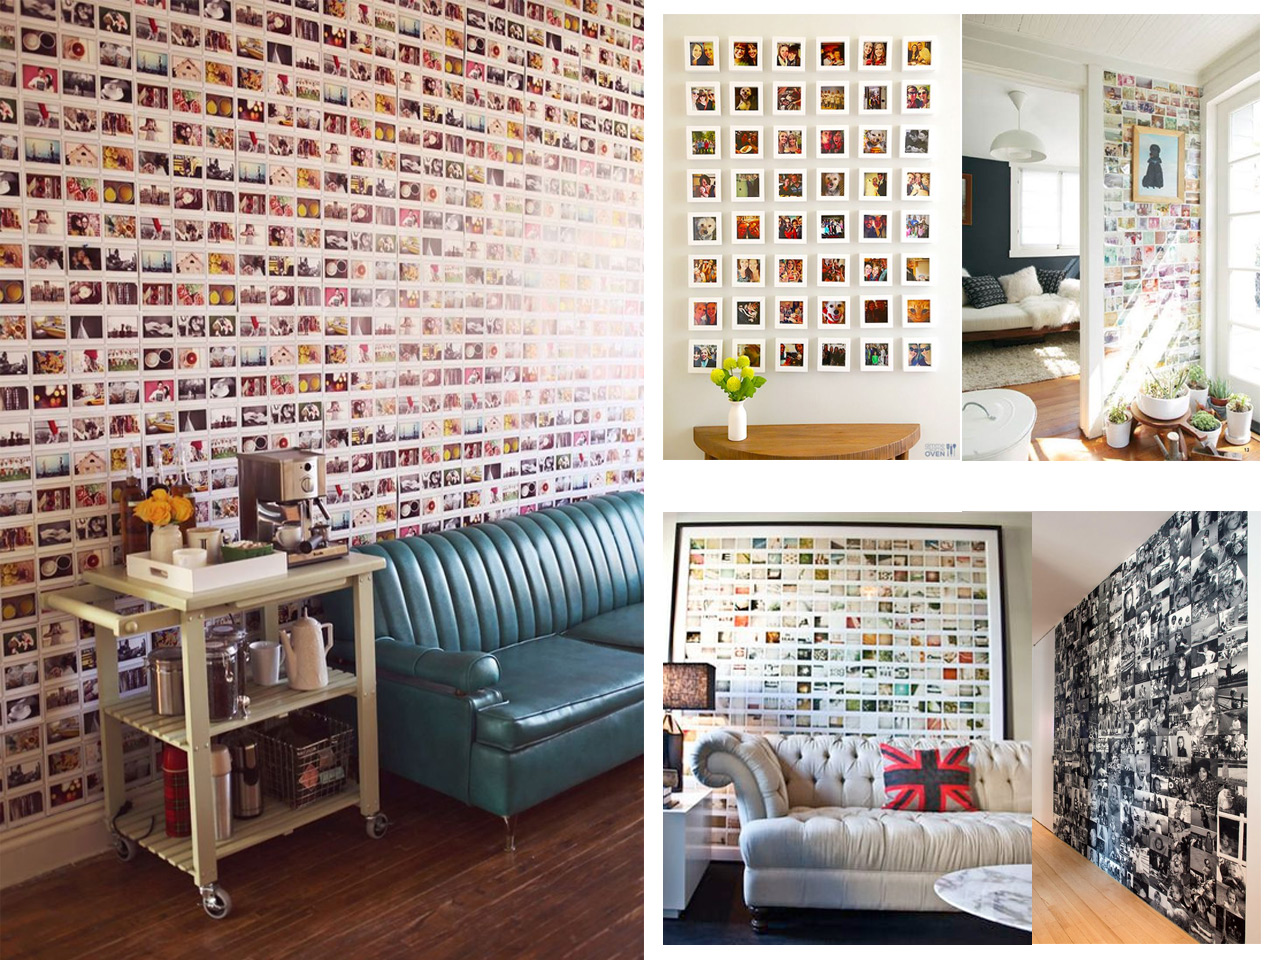 60 brillantes ideas para decorar con fotos familiares - Como poner fotos en la pared ...